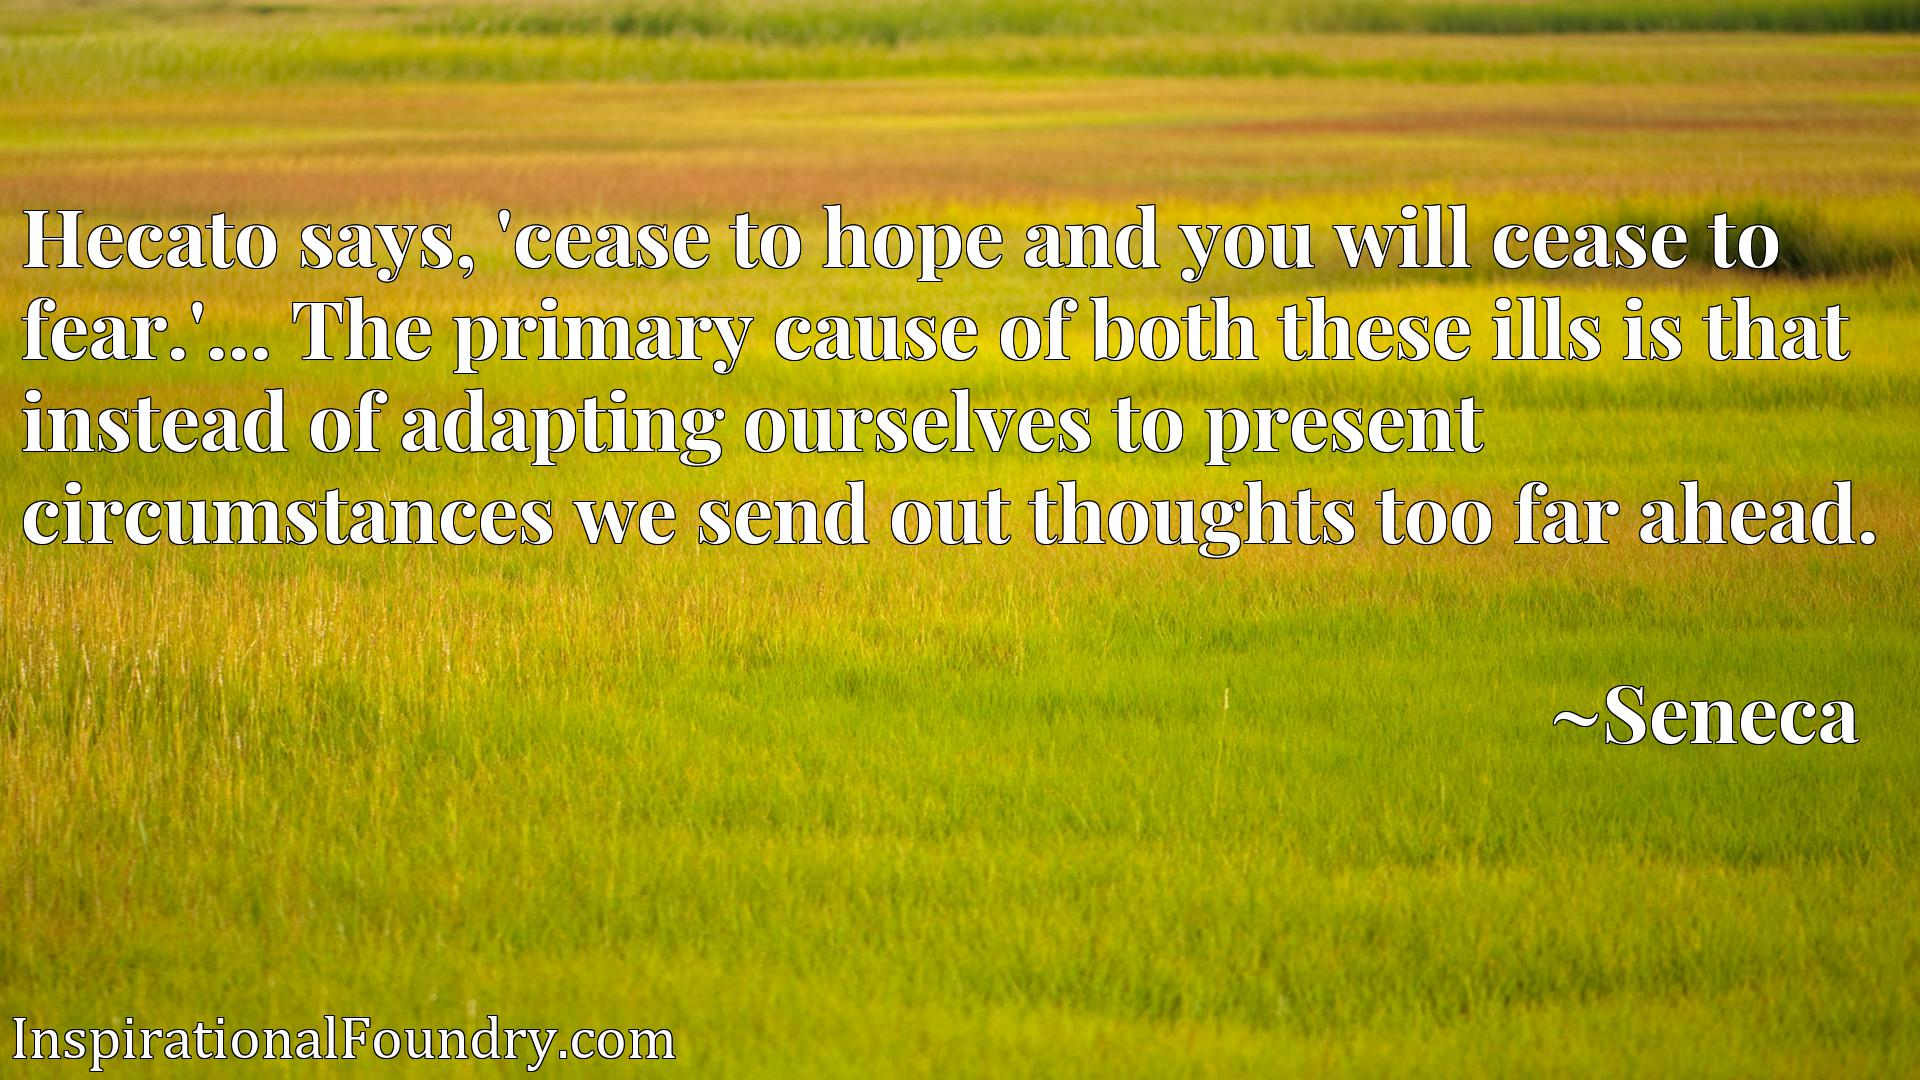 Hecato says, 'cease to hope and you will cease to fear.'... The primary cause of both these ills is that instead of adapting ourselves to present circumstances we send out thoughts too far ahead.